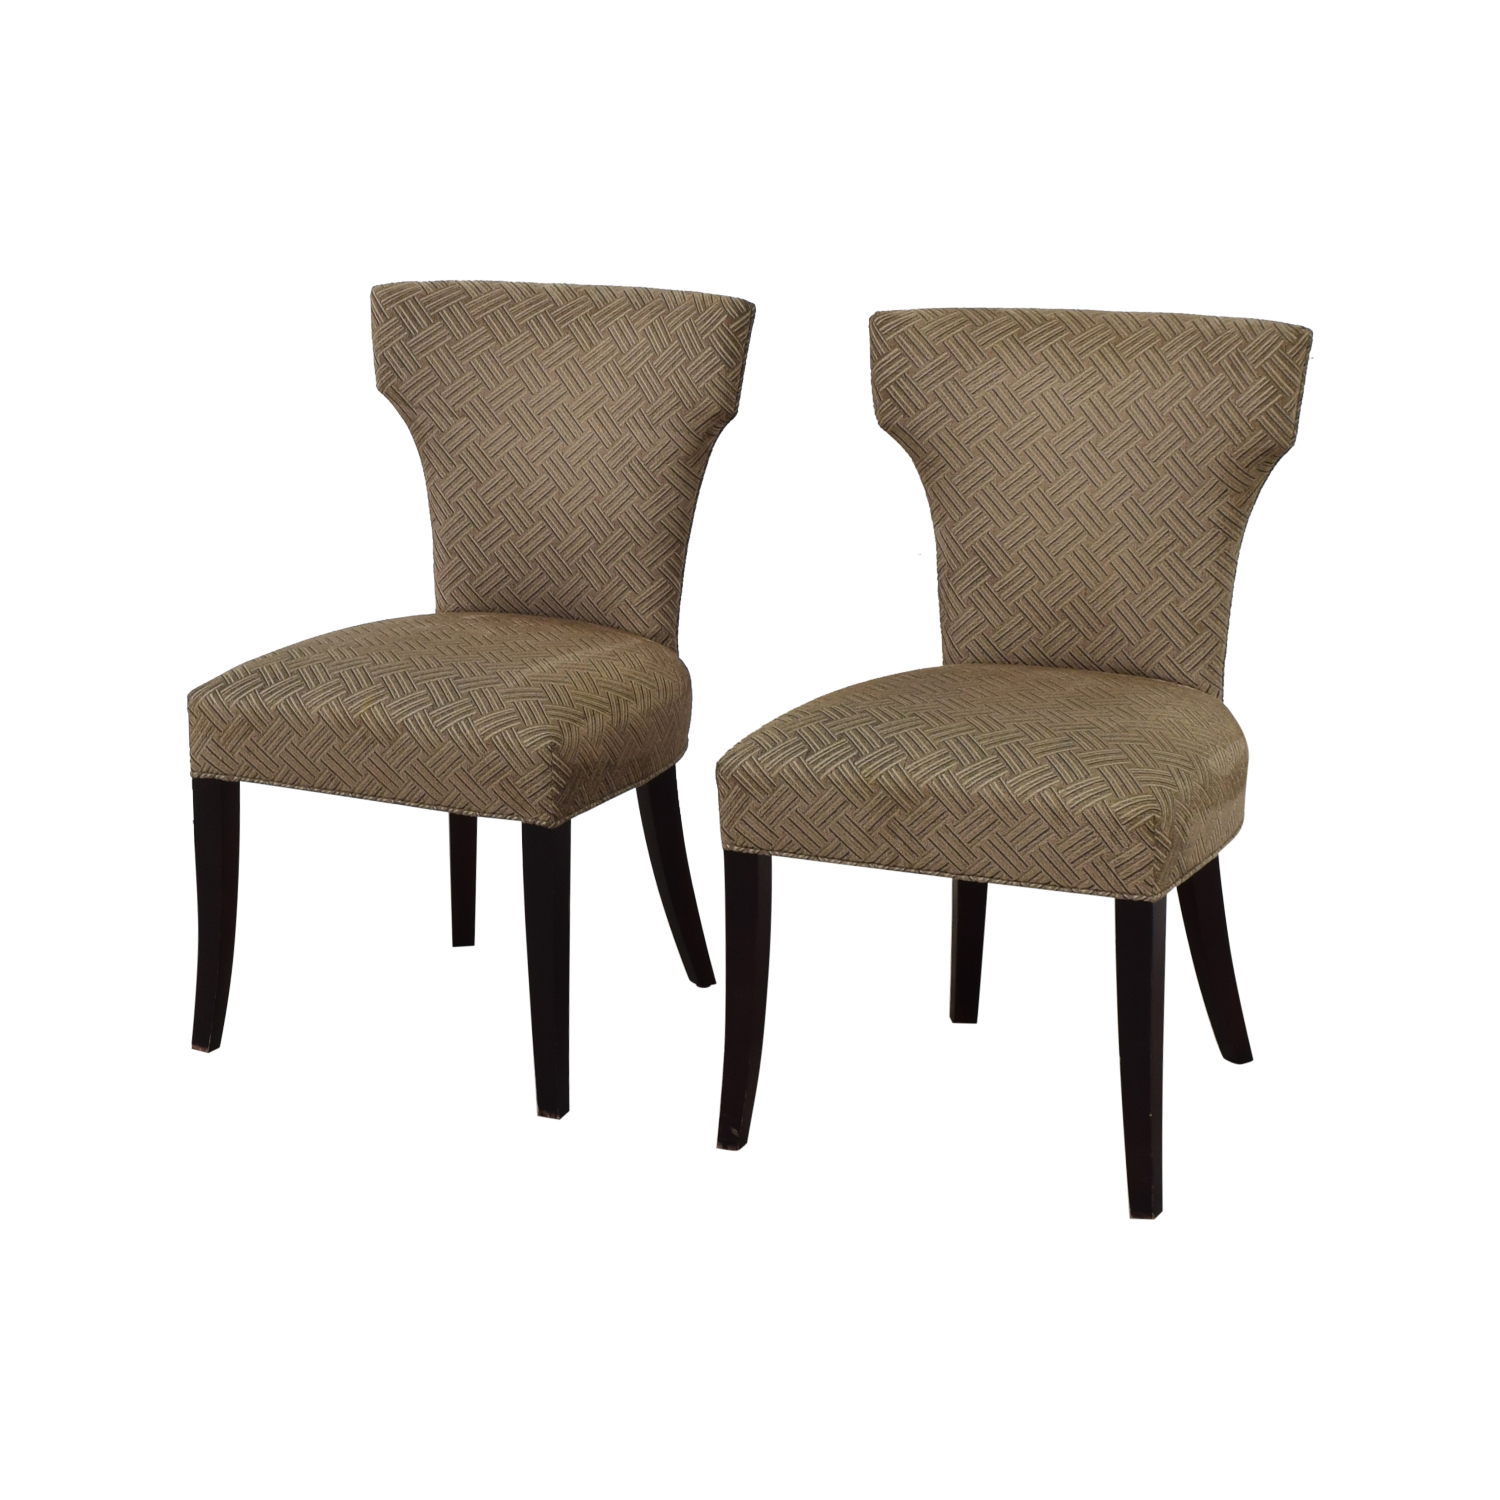 Crate & Barrel Crate & Barrel Sasha Upholstered Dining Chairs second hand